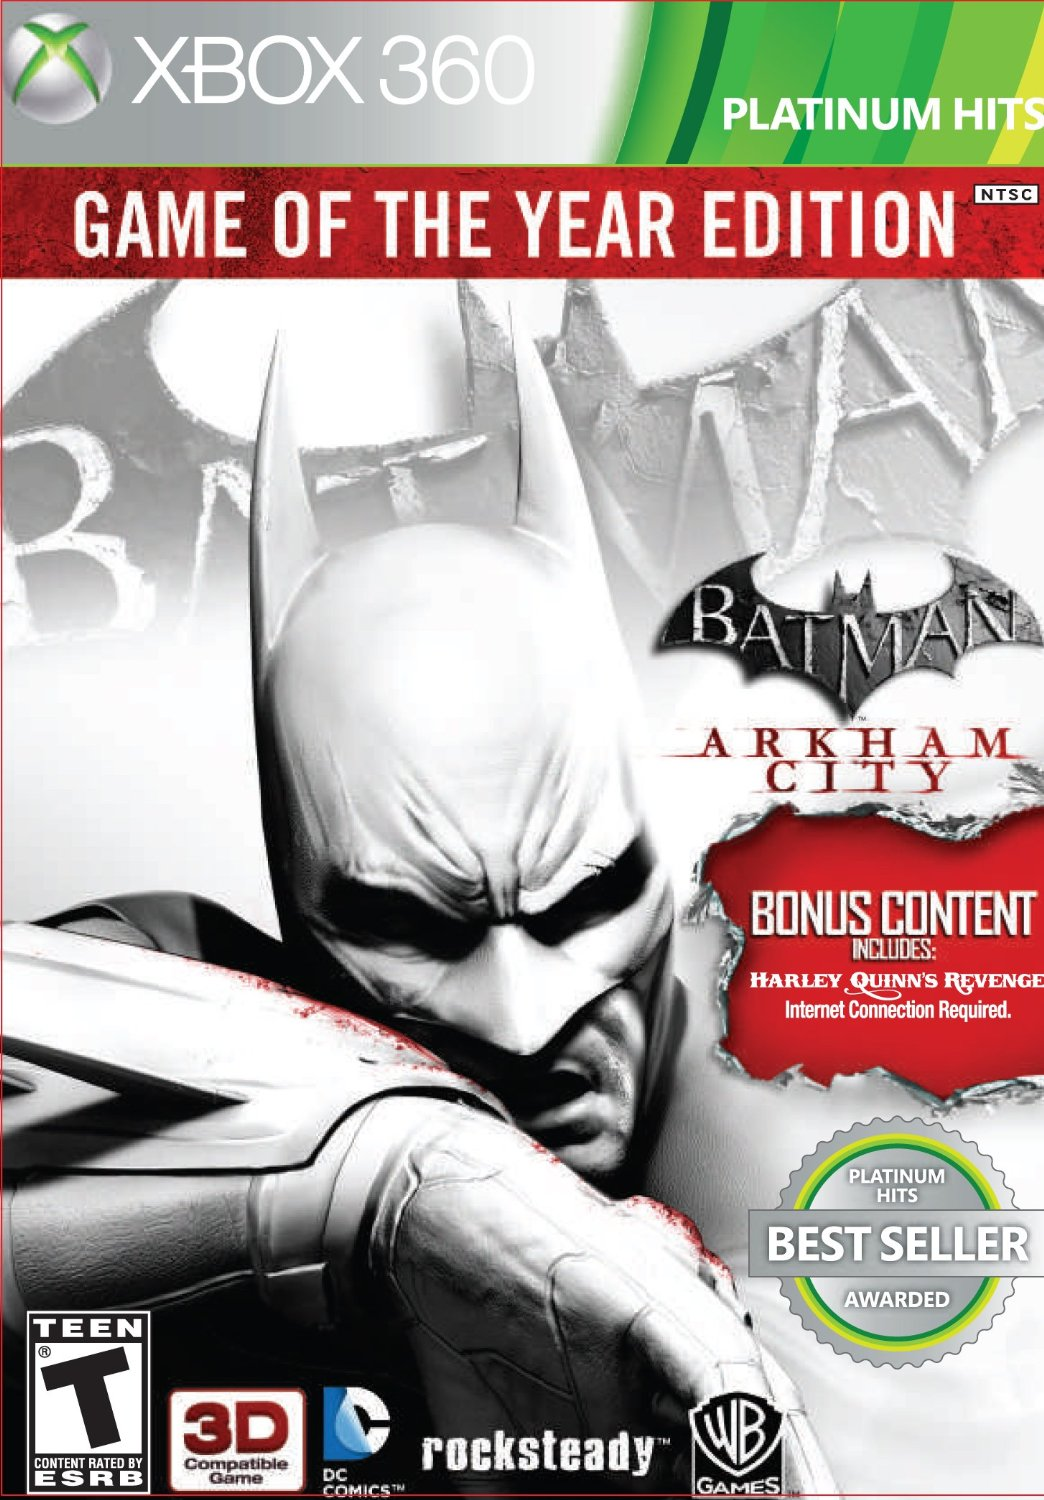 360: BATMAN ARKHAM CITY (GAME OF THE YEAR EDITION) (2DISC) (BOX)